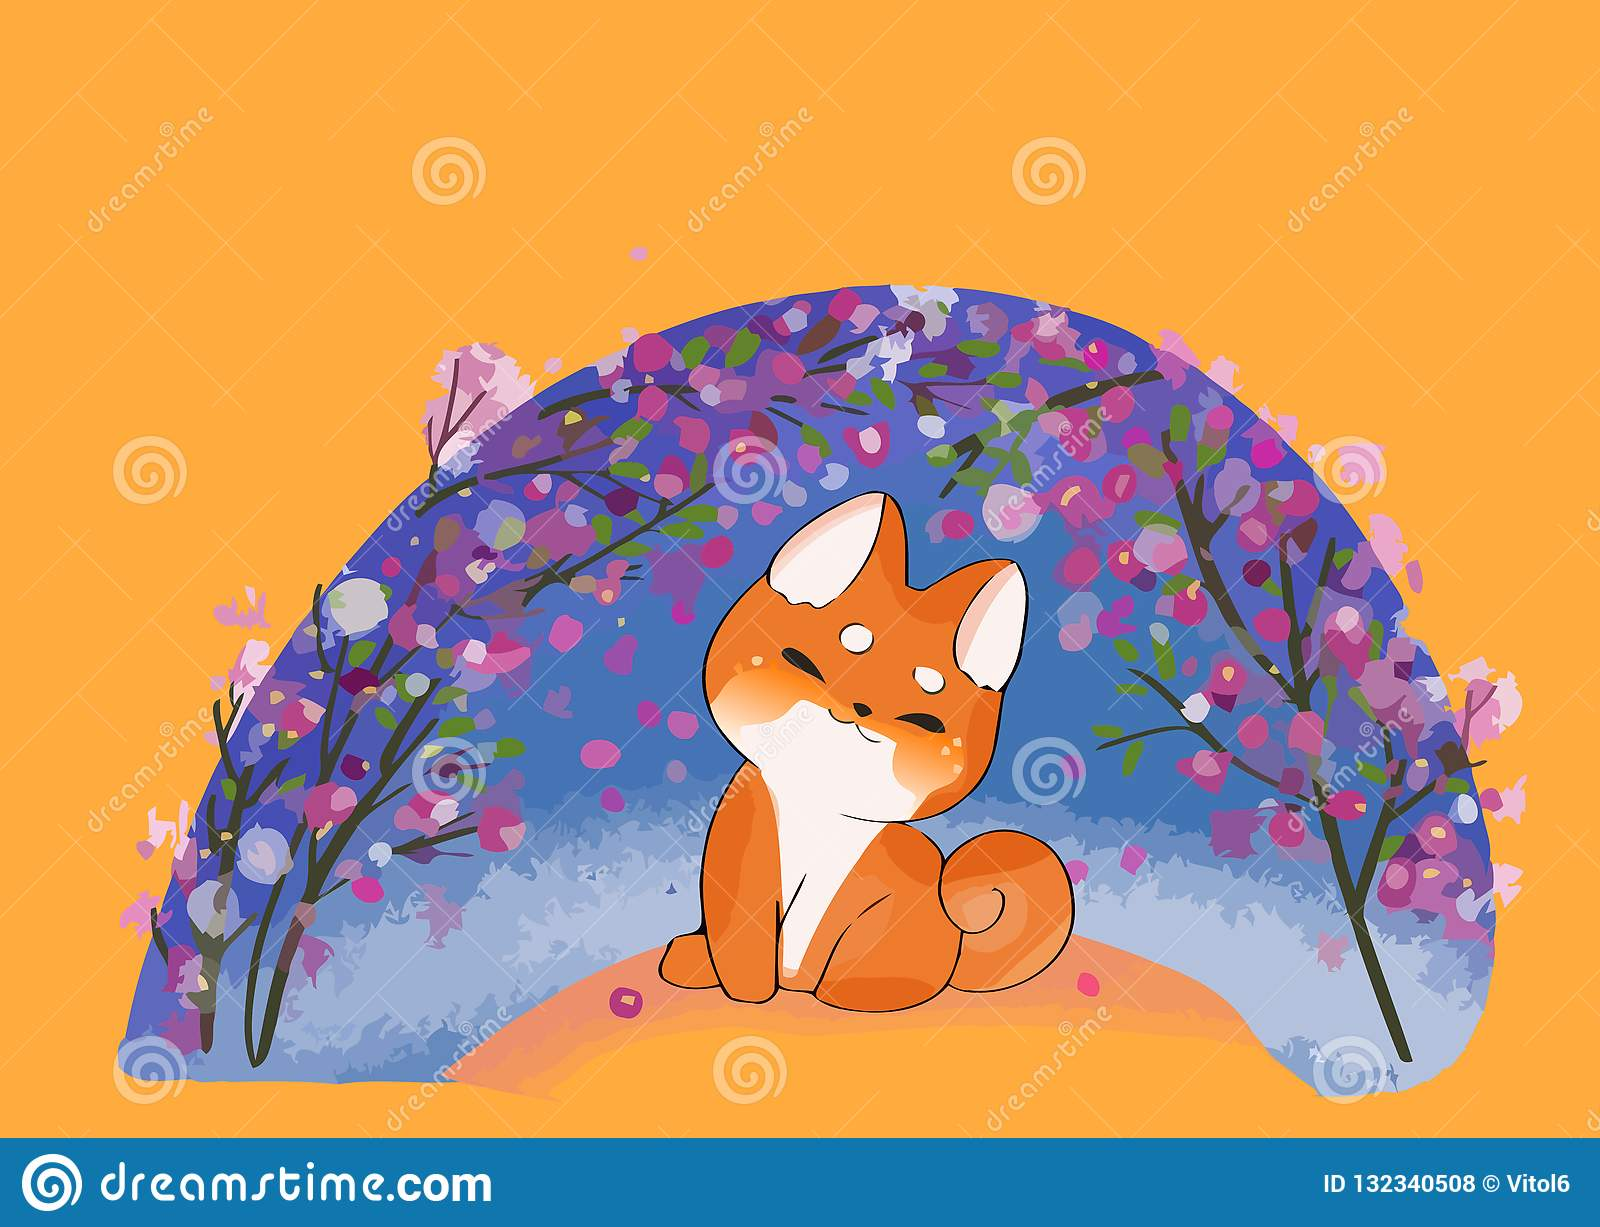 Kawaii Dog Of Shiba Inu Breed Cartoon Style Vector Stock Vector Illustration Of Graphic Breed 132340508